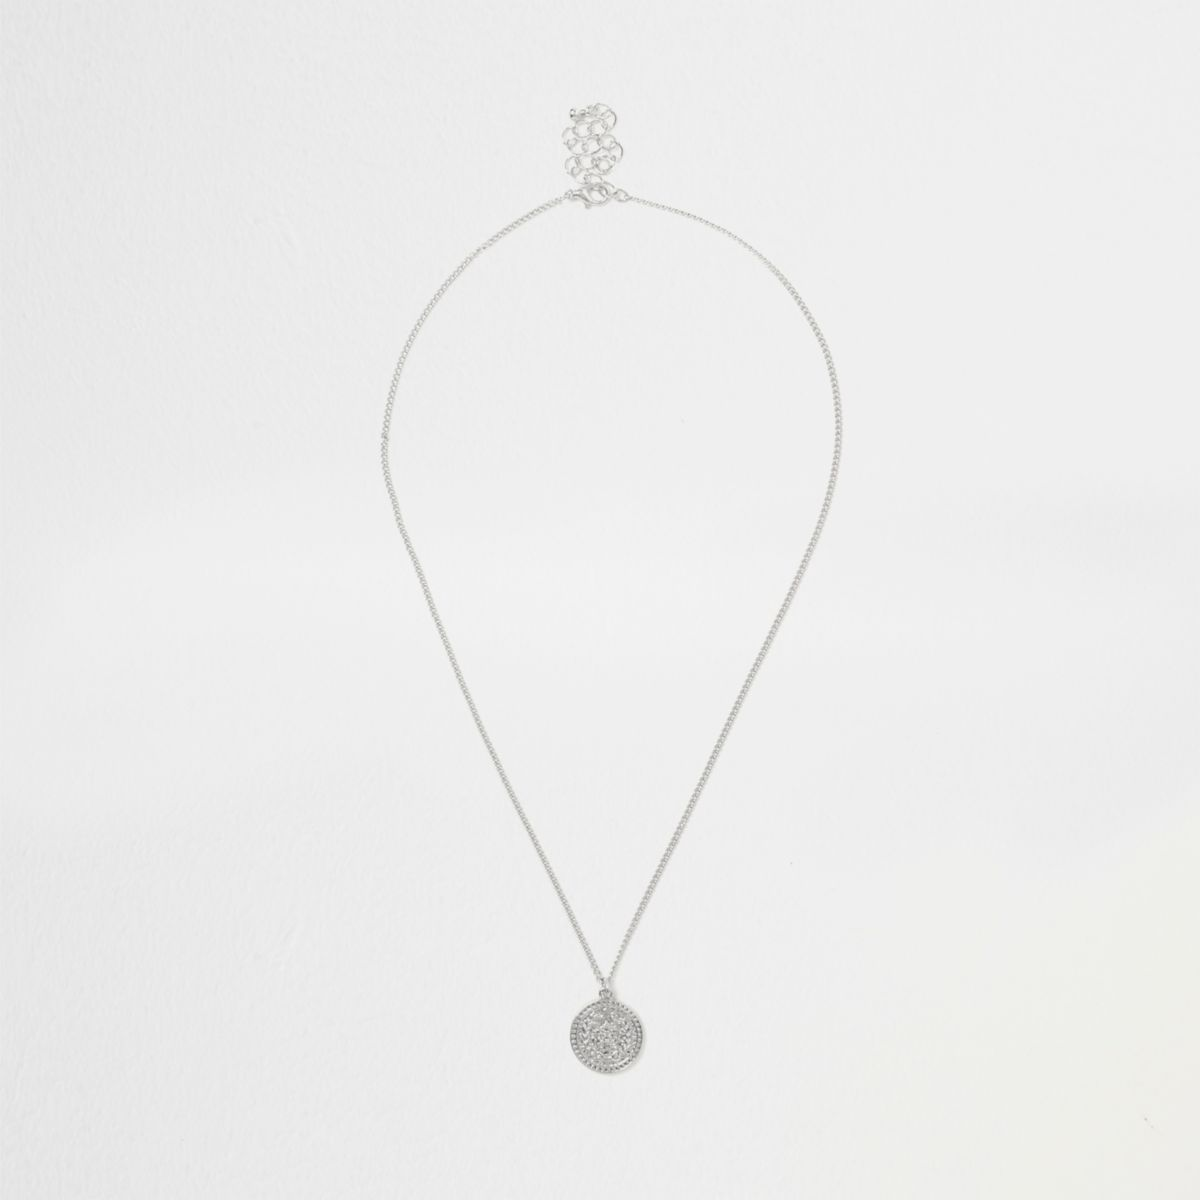 Silver tone coin necklace